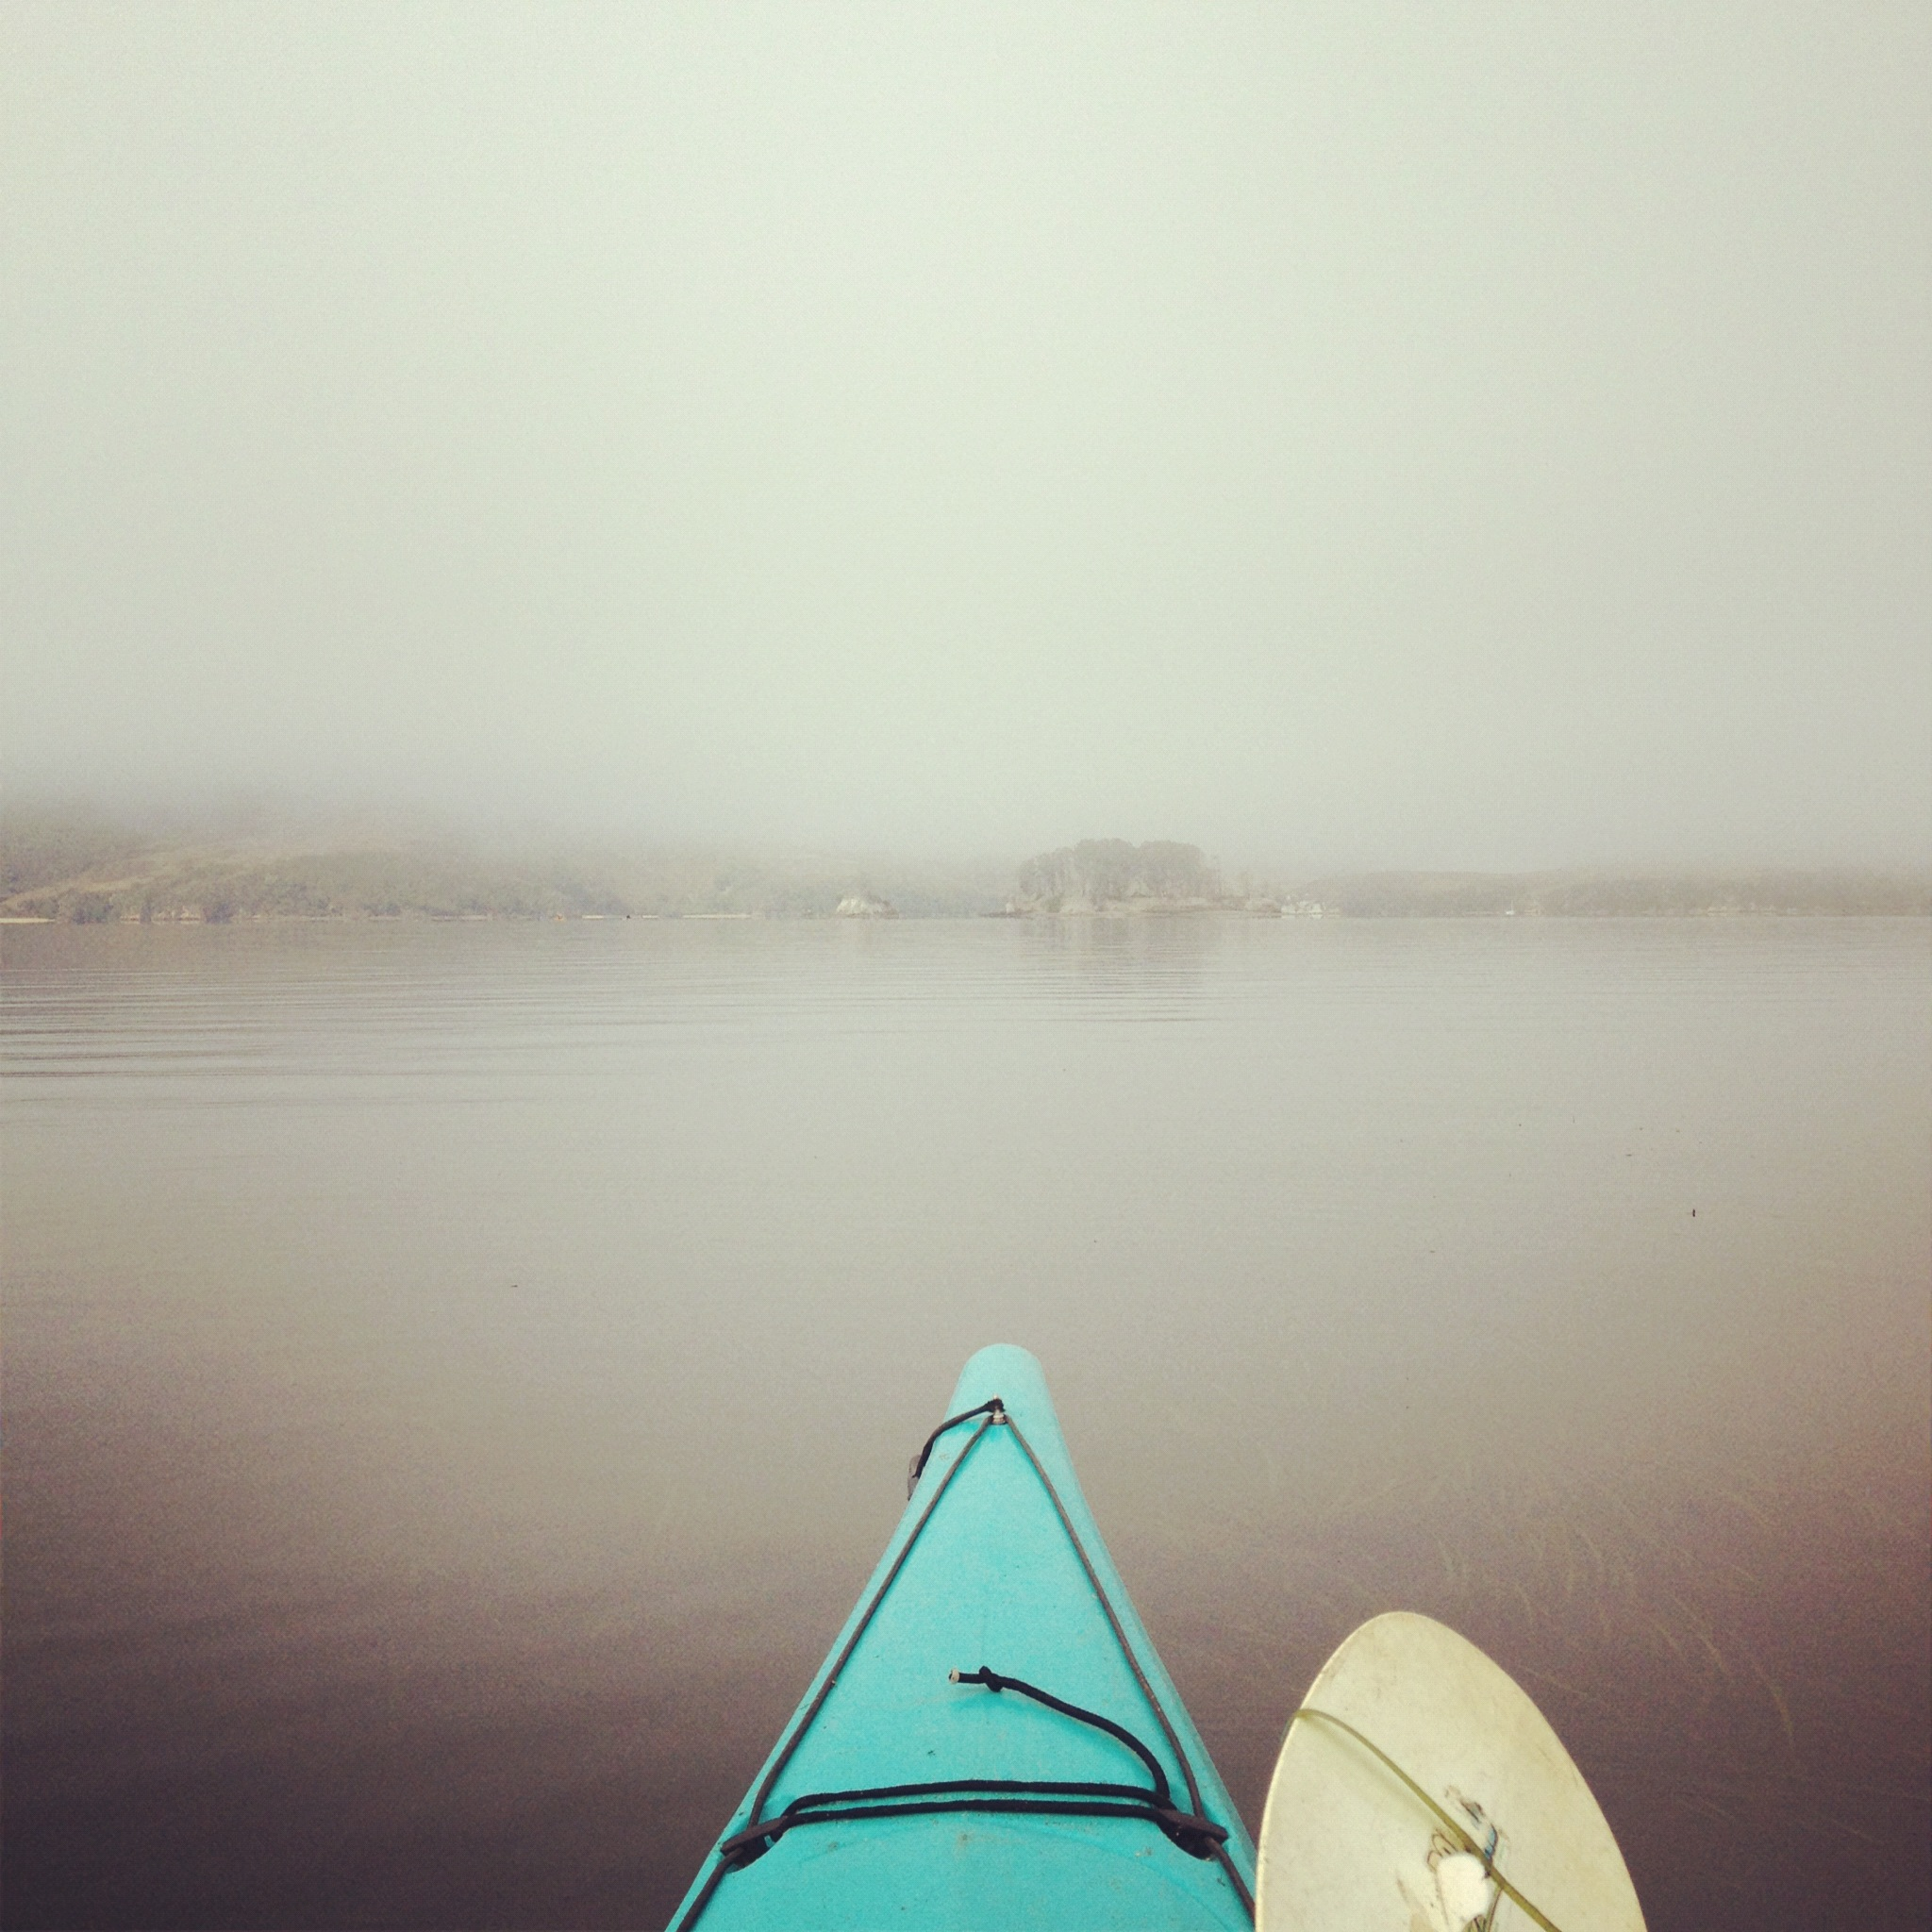 Heading out into Tomales Bay in the fog